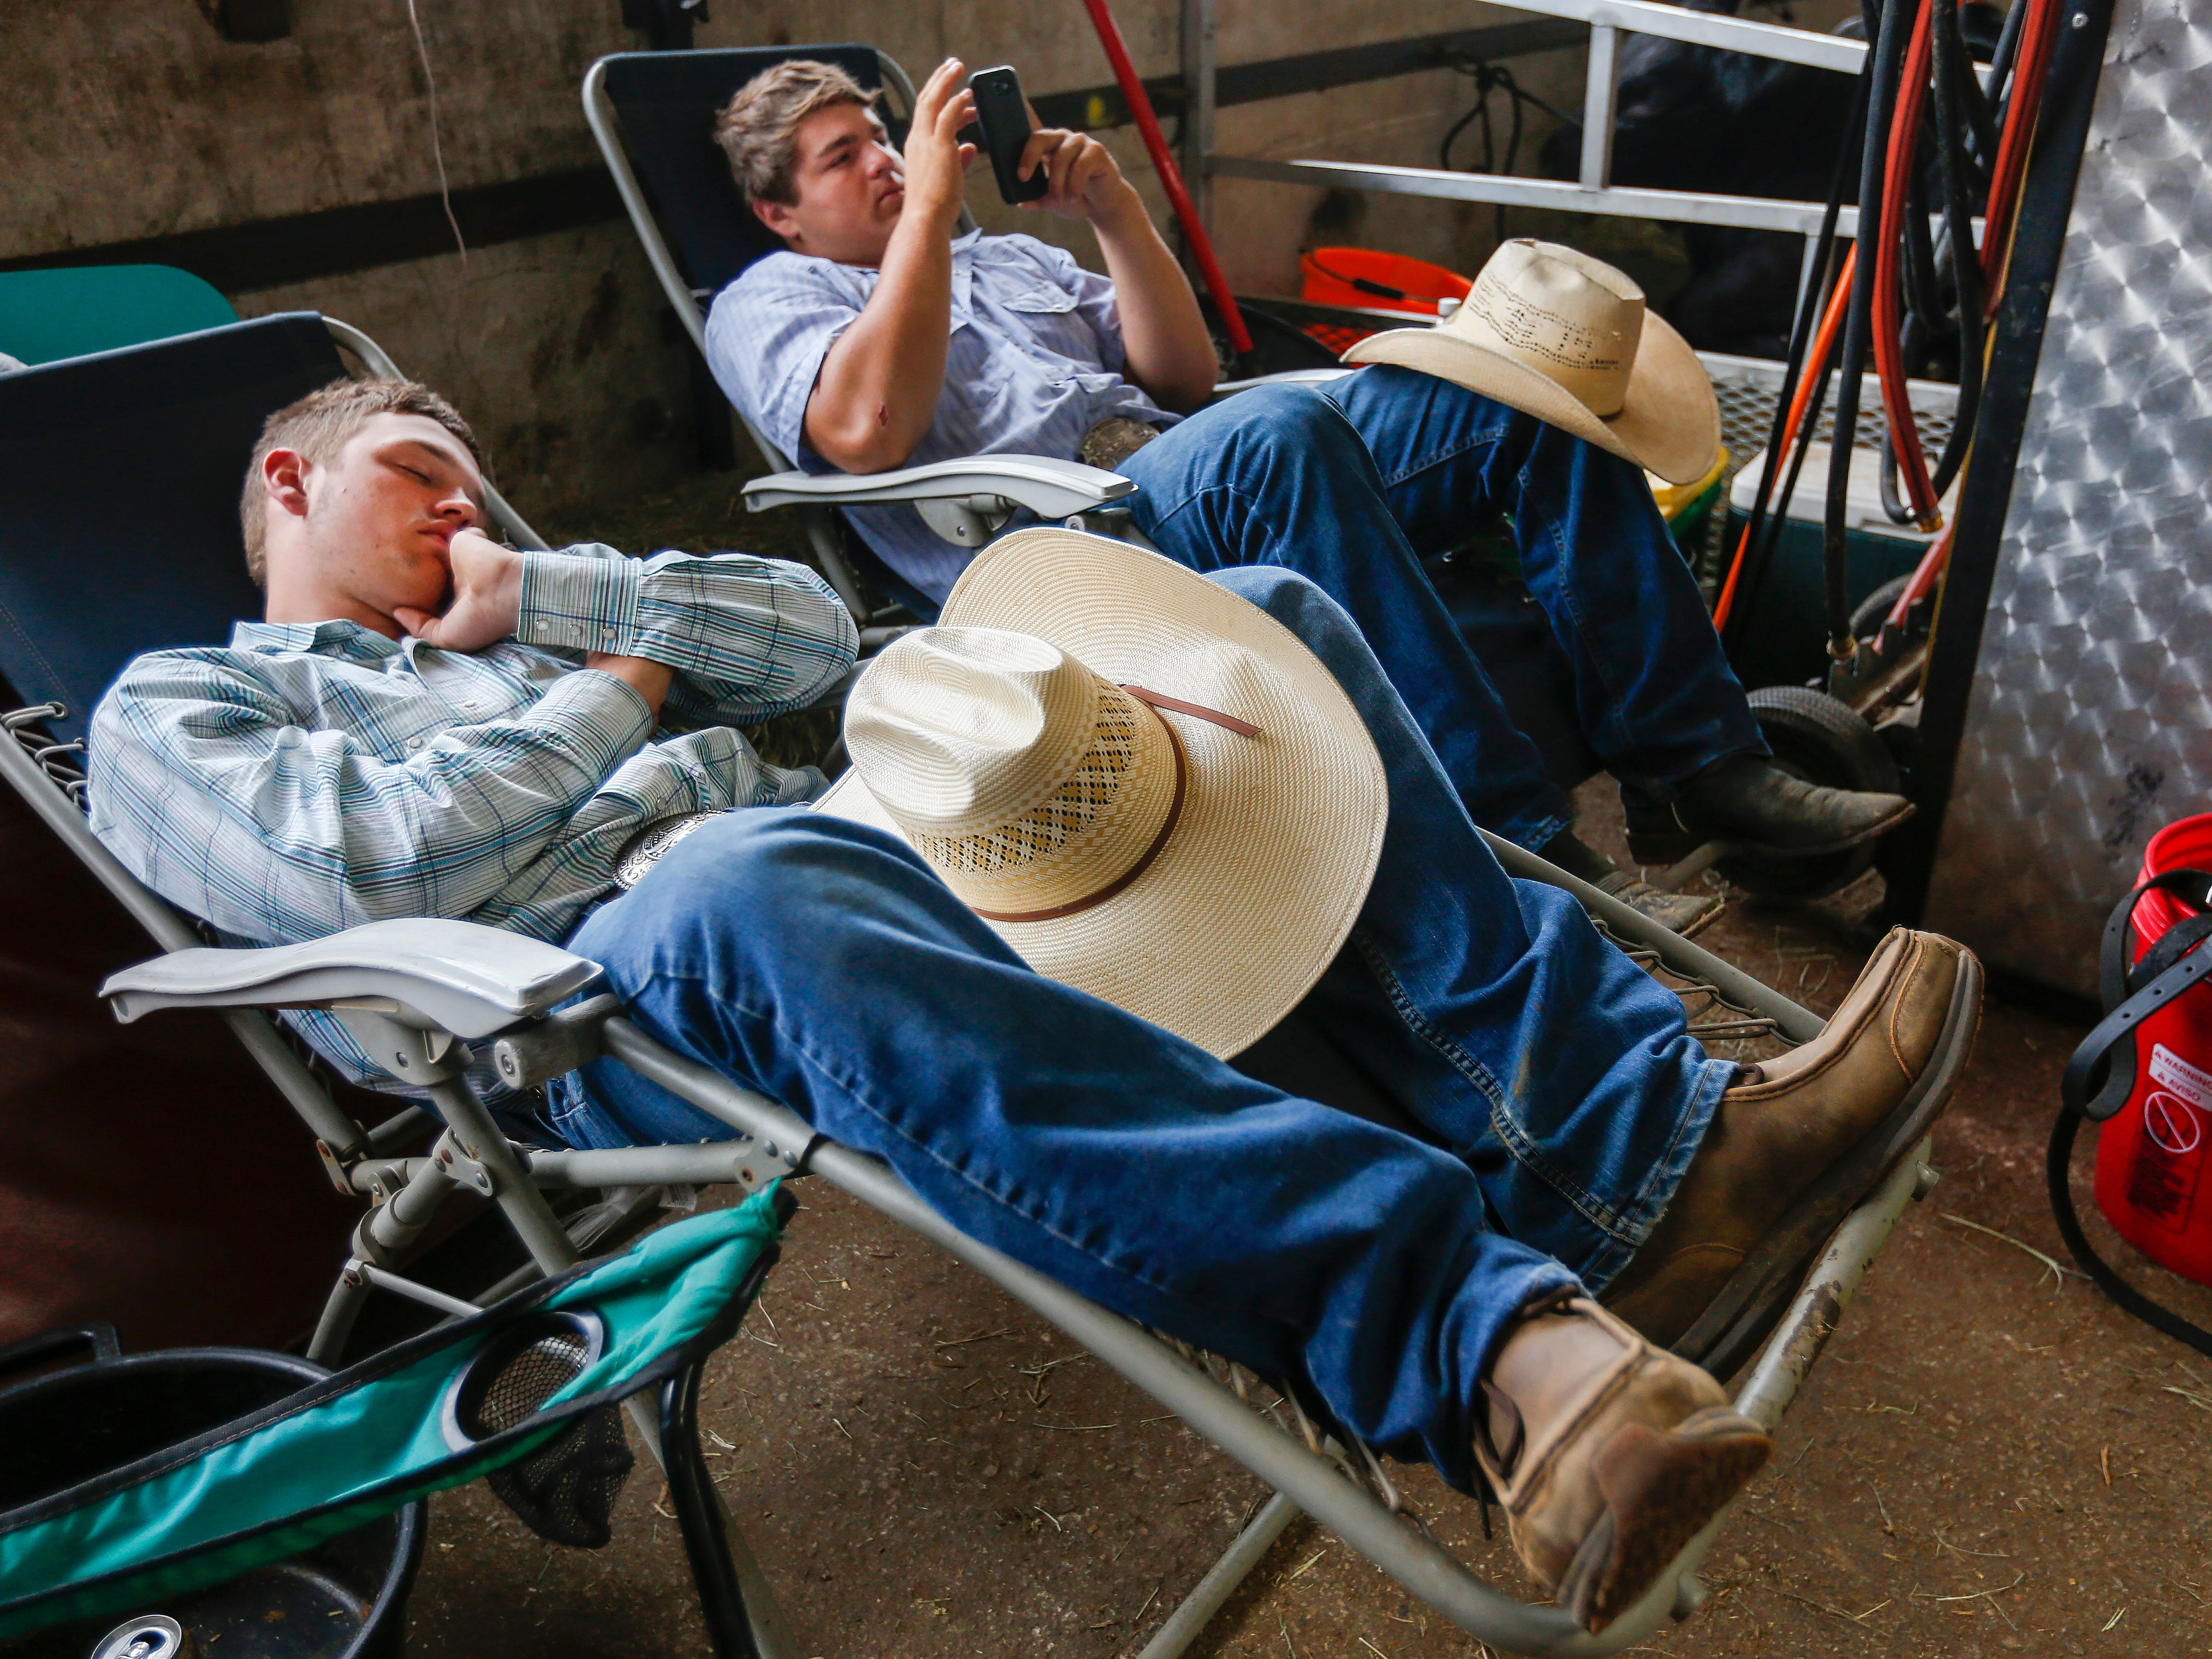 Blaine Bishop, left, Pineville, MO., takes a nap as Colten Leech, of Stark City, MO., looks at his phone at the Ozark Empire Fair on Saturday, July 28, 2018. The two were entered in the Limousin cattle competition.